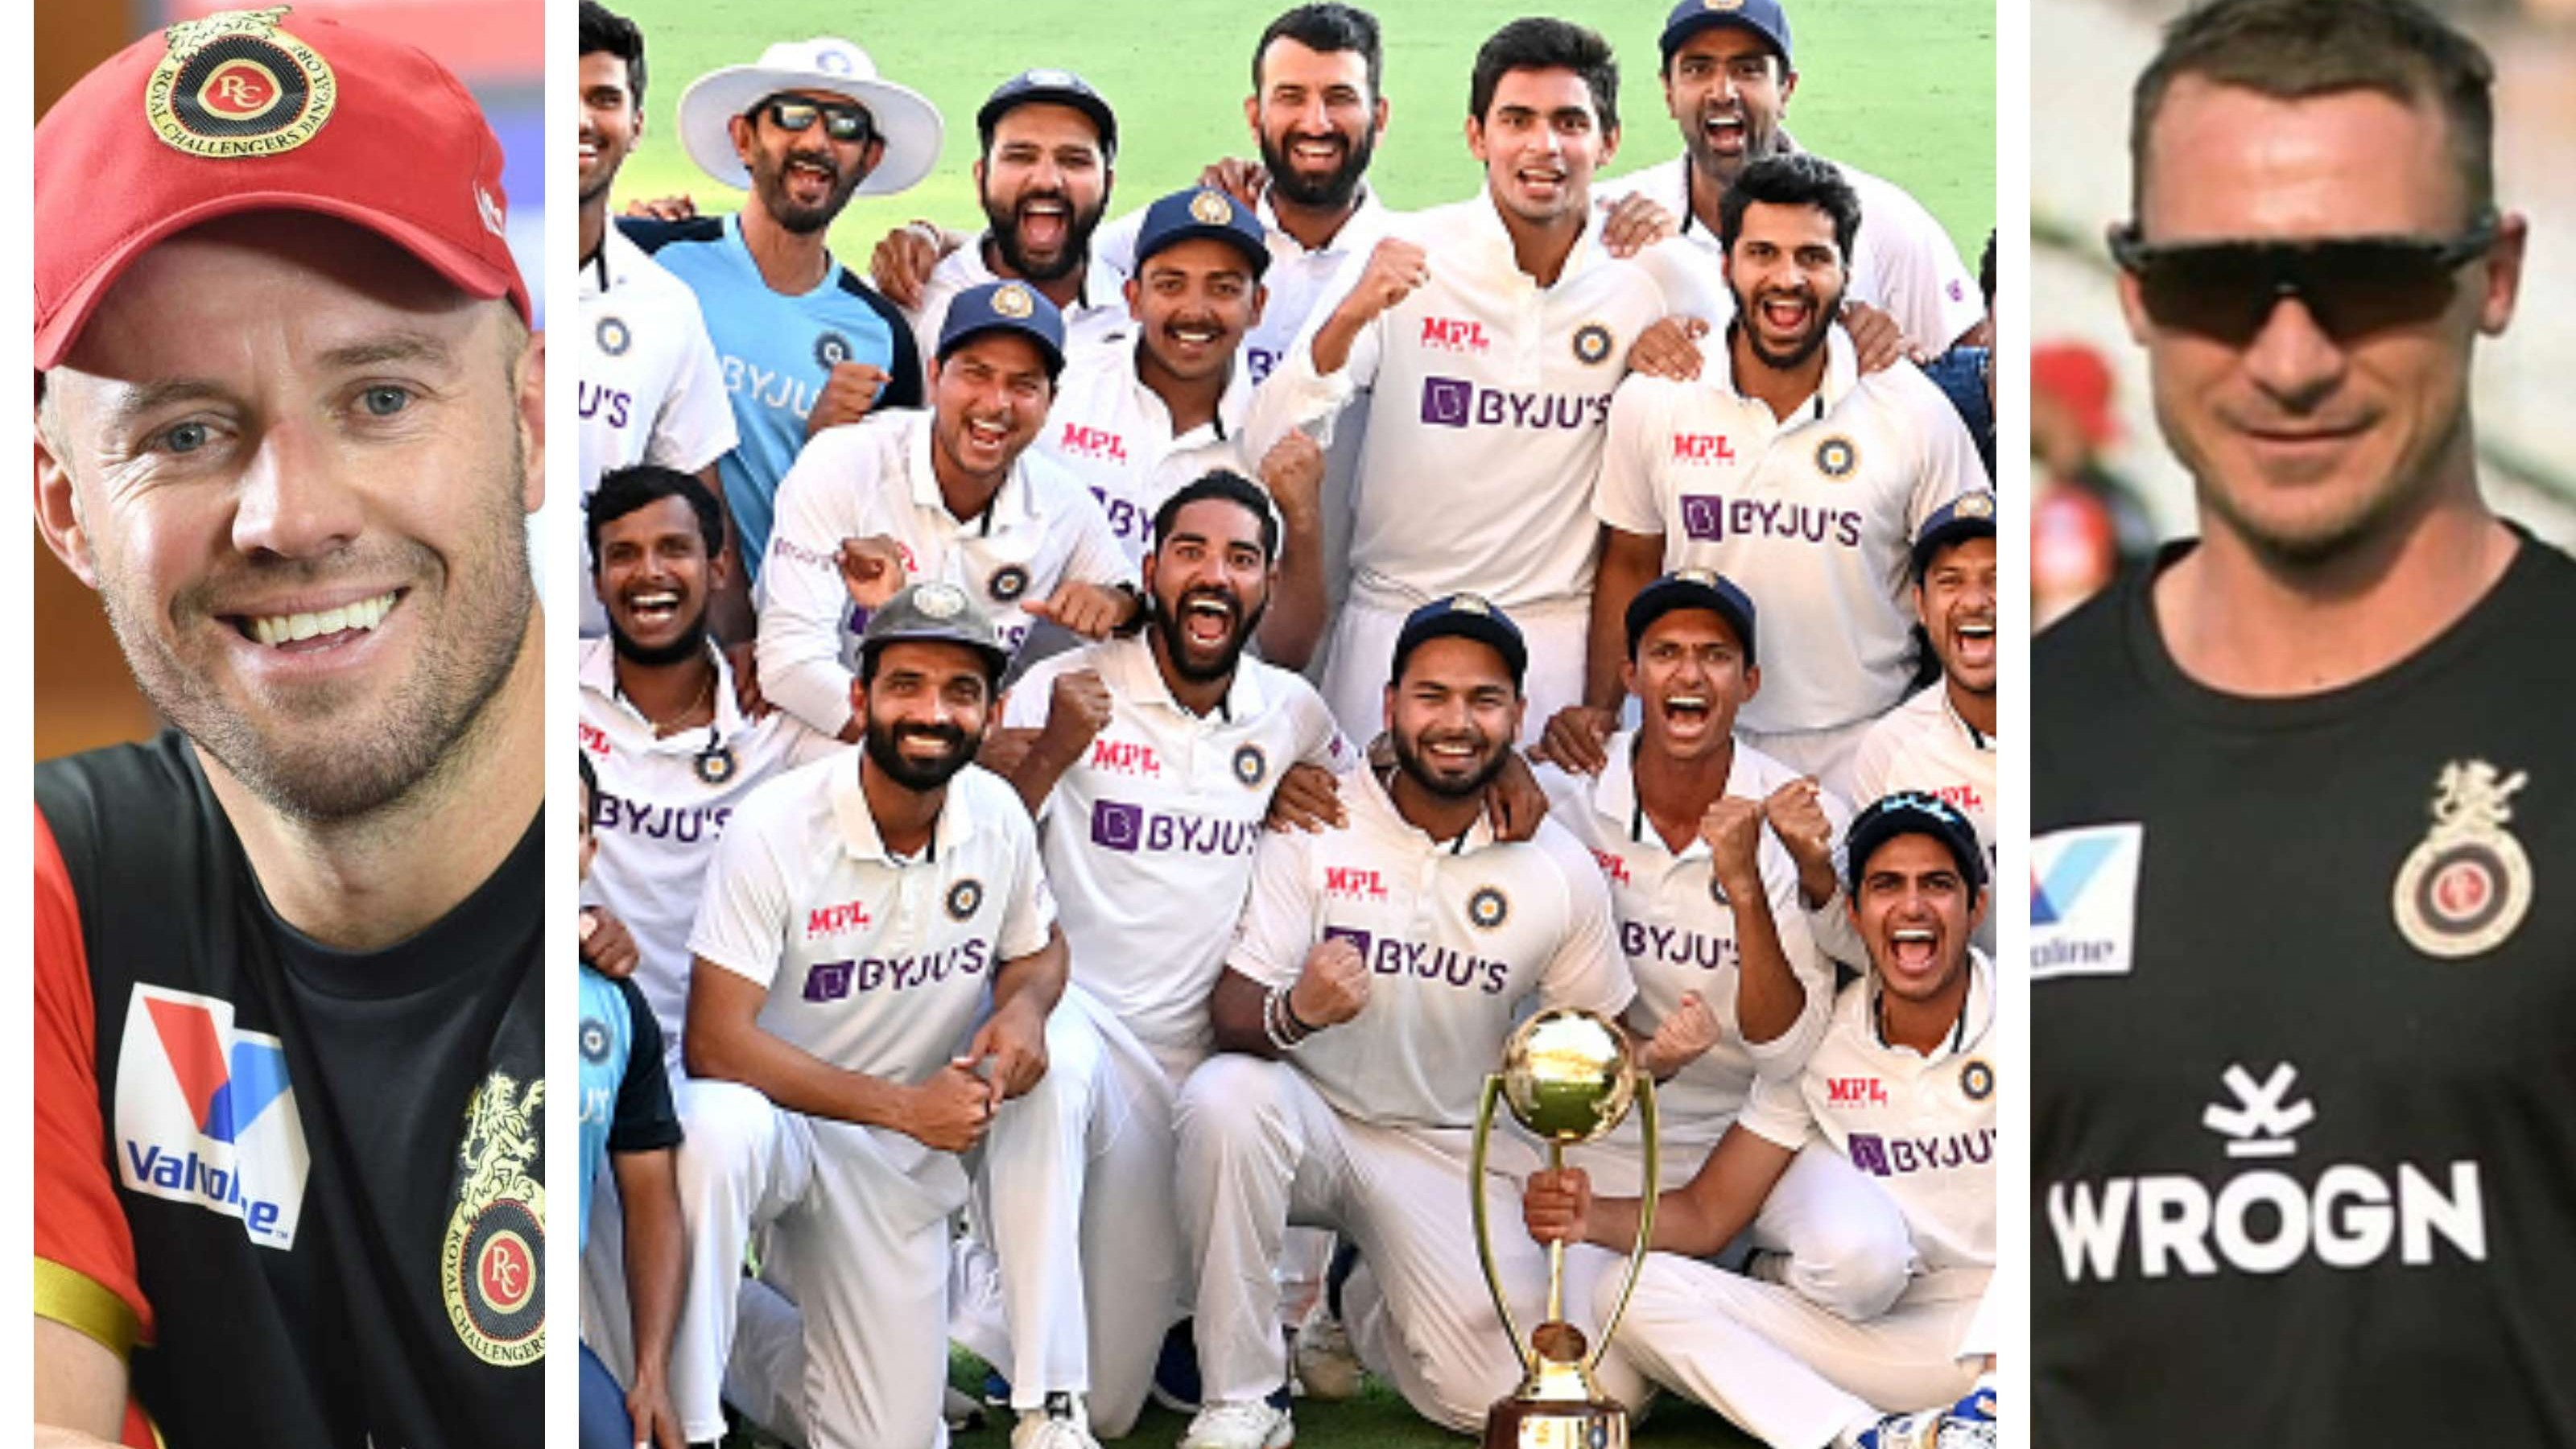 AUS v IND 2020-21: International cricket fraternity reacts as Team India pull off historic Test series win in Australia